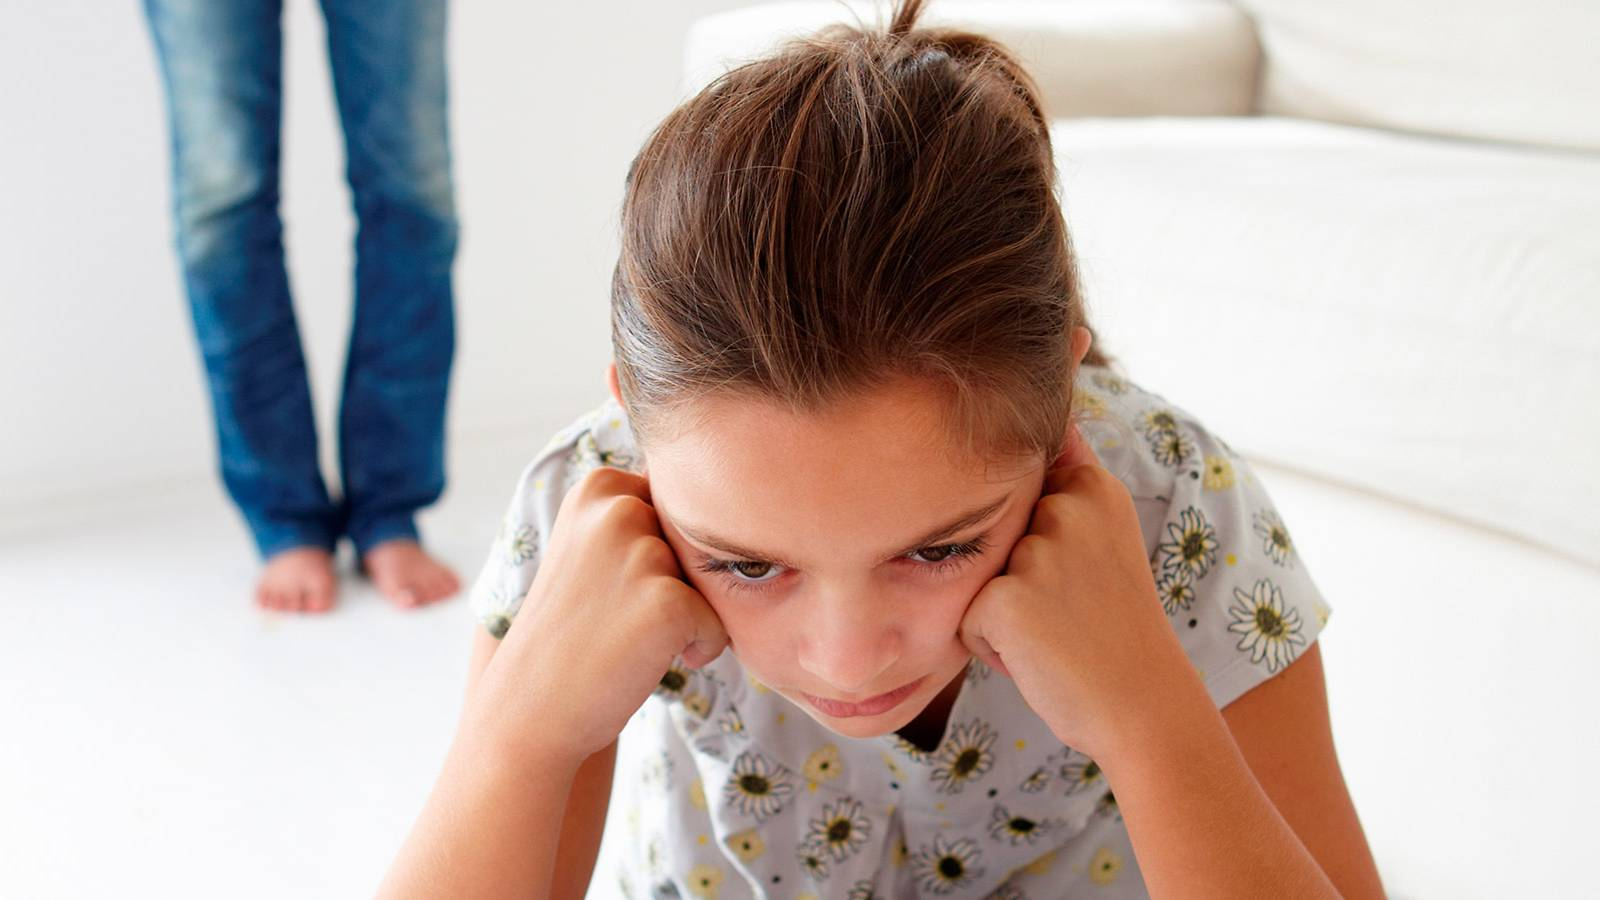 Kids-8-tips-for-better-communication-with-a-pre-teen